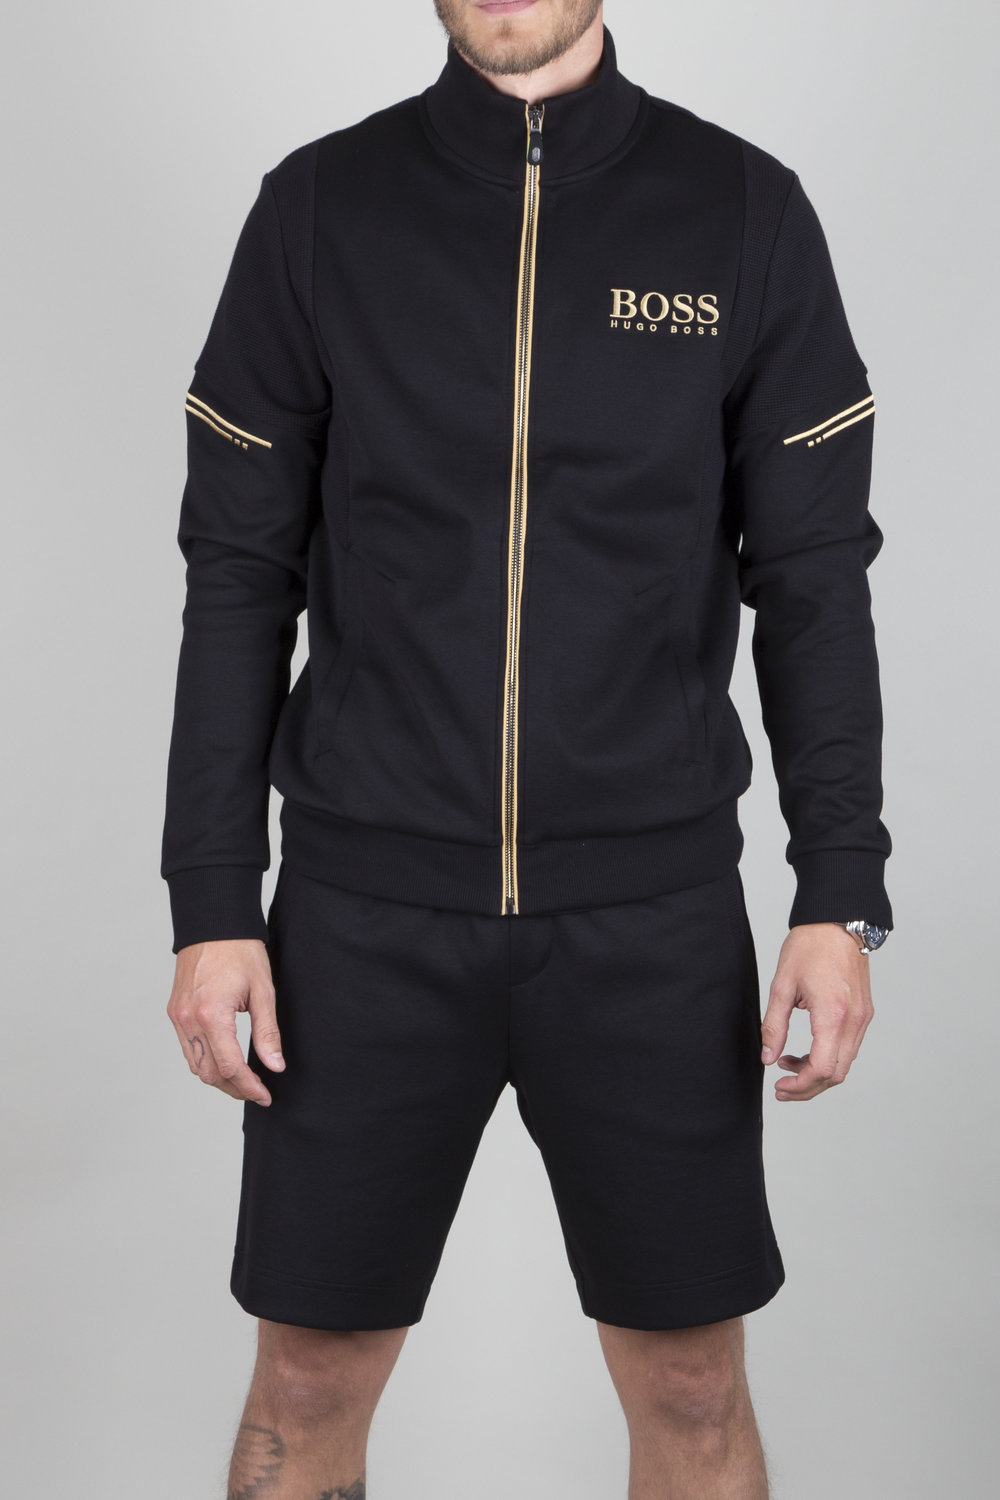 The iconic co-ordinating athleisure pieces, presented in black with frozen gold highlights, give a contemporary look. Yet adaptable for sports and active days.